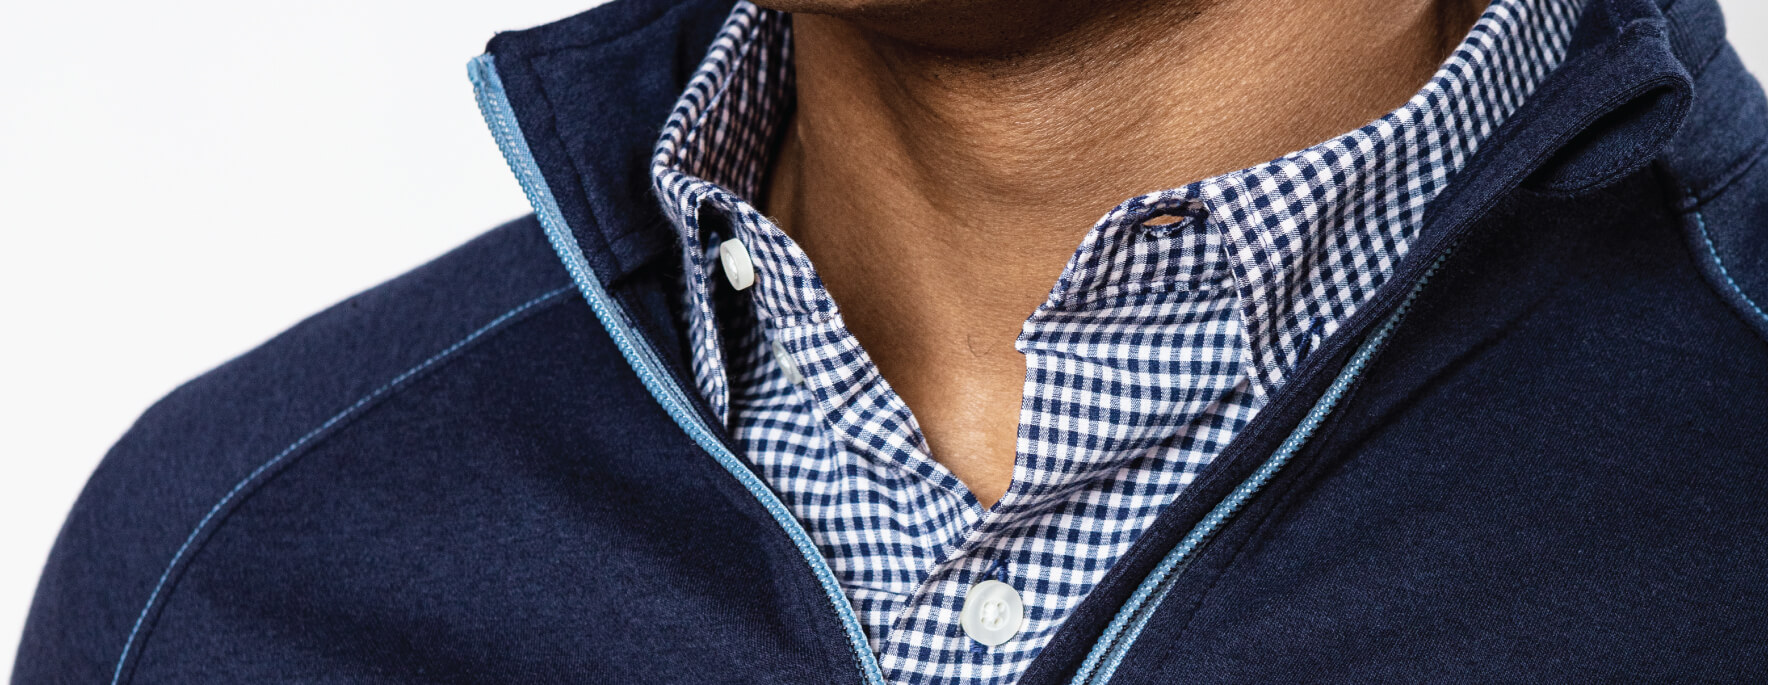 Men's Bamboo Button Downs - Performance Button Downs - Sport Shirts